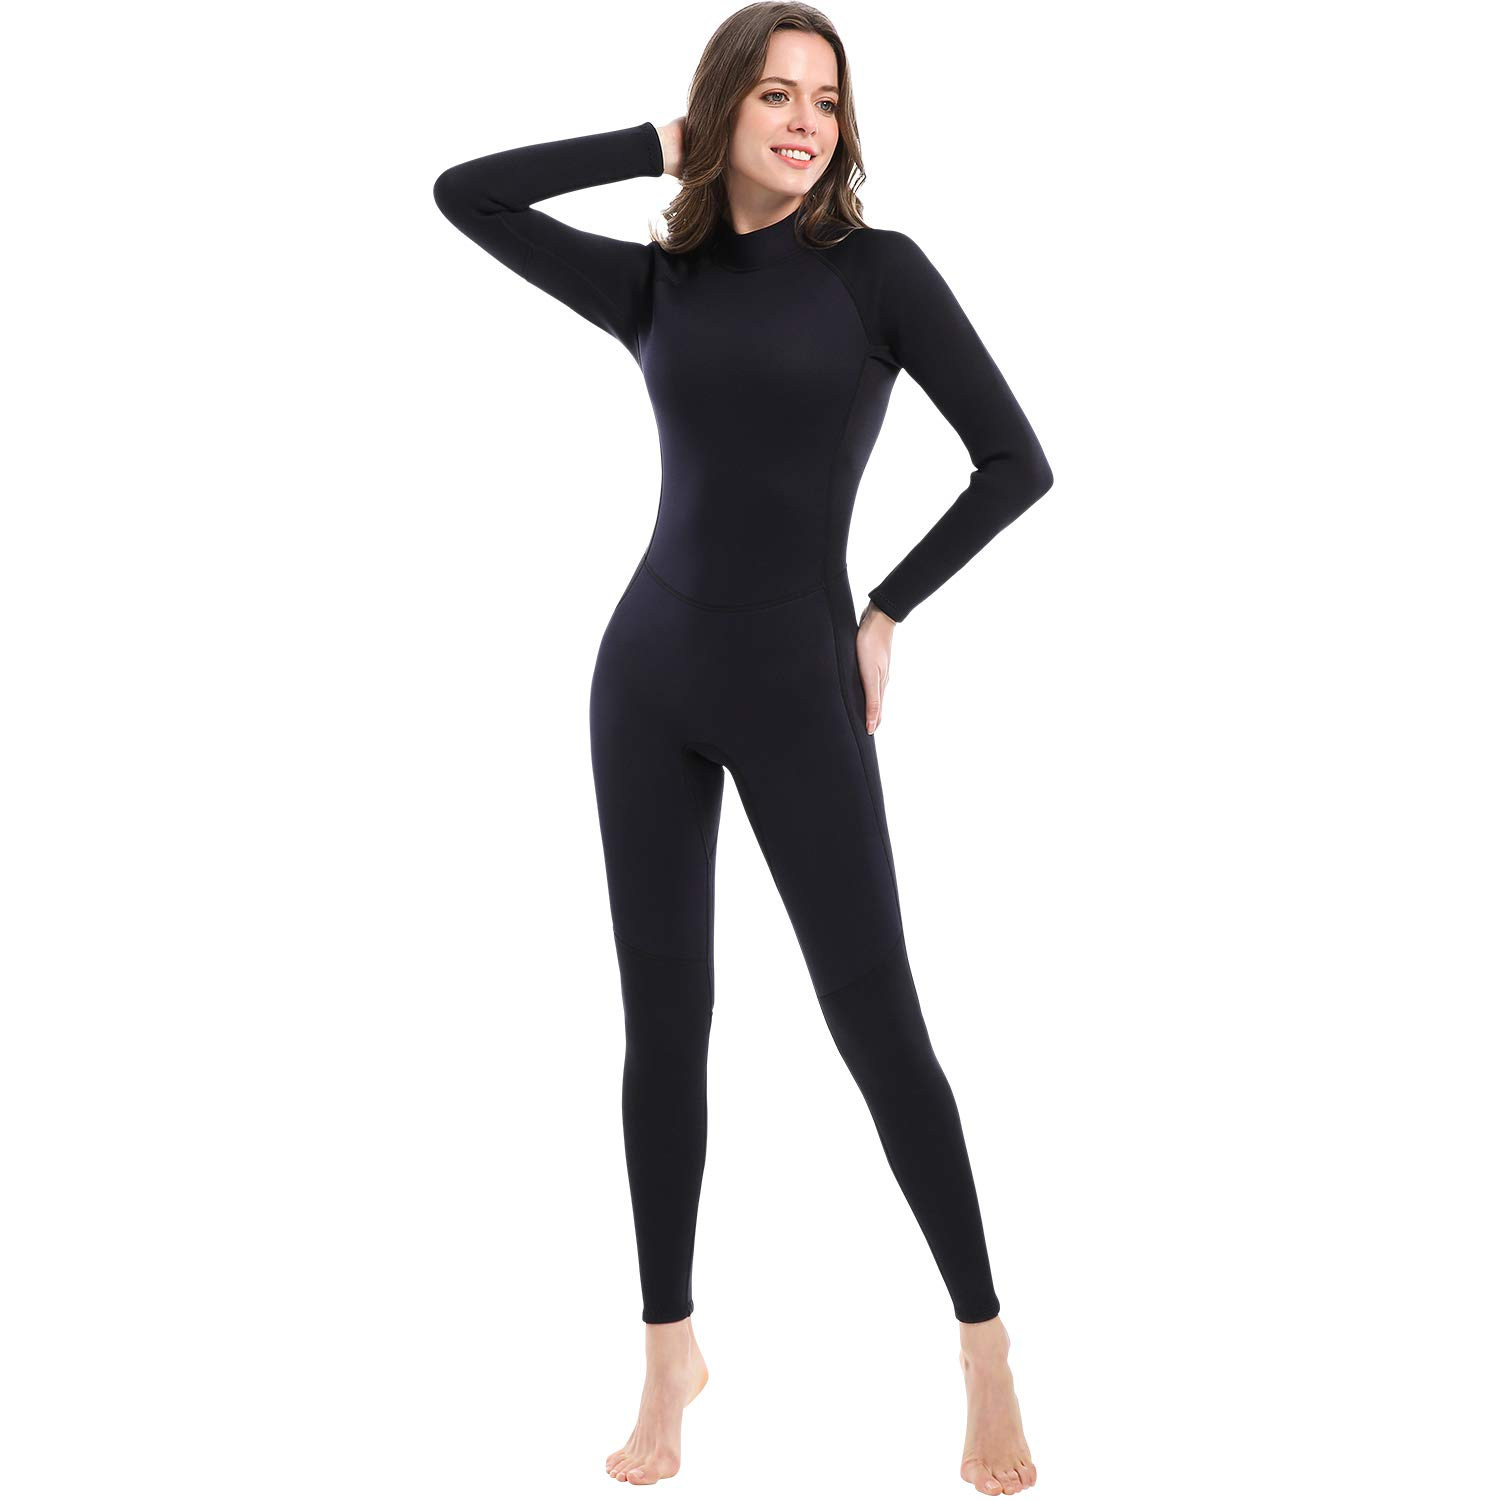 dark lightning 3mm Wetsuit Women, Women's Wetsuit Long Sleeve Full Suit Premium Neoprene Womens Suit Scuba Diving/Surf/Canoe, Jumpersuit (Size6/S) by dark lightning